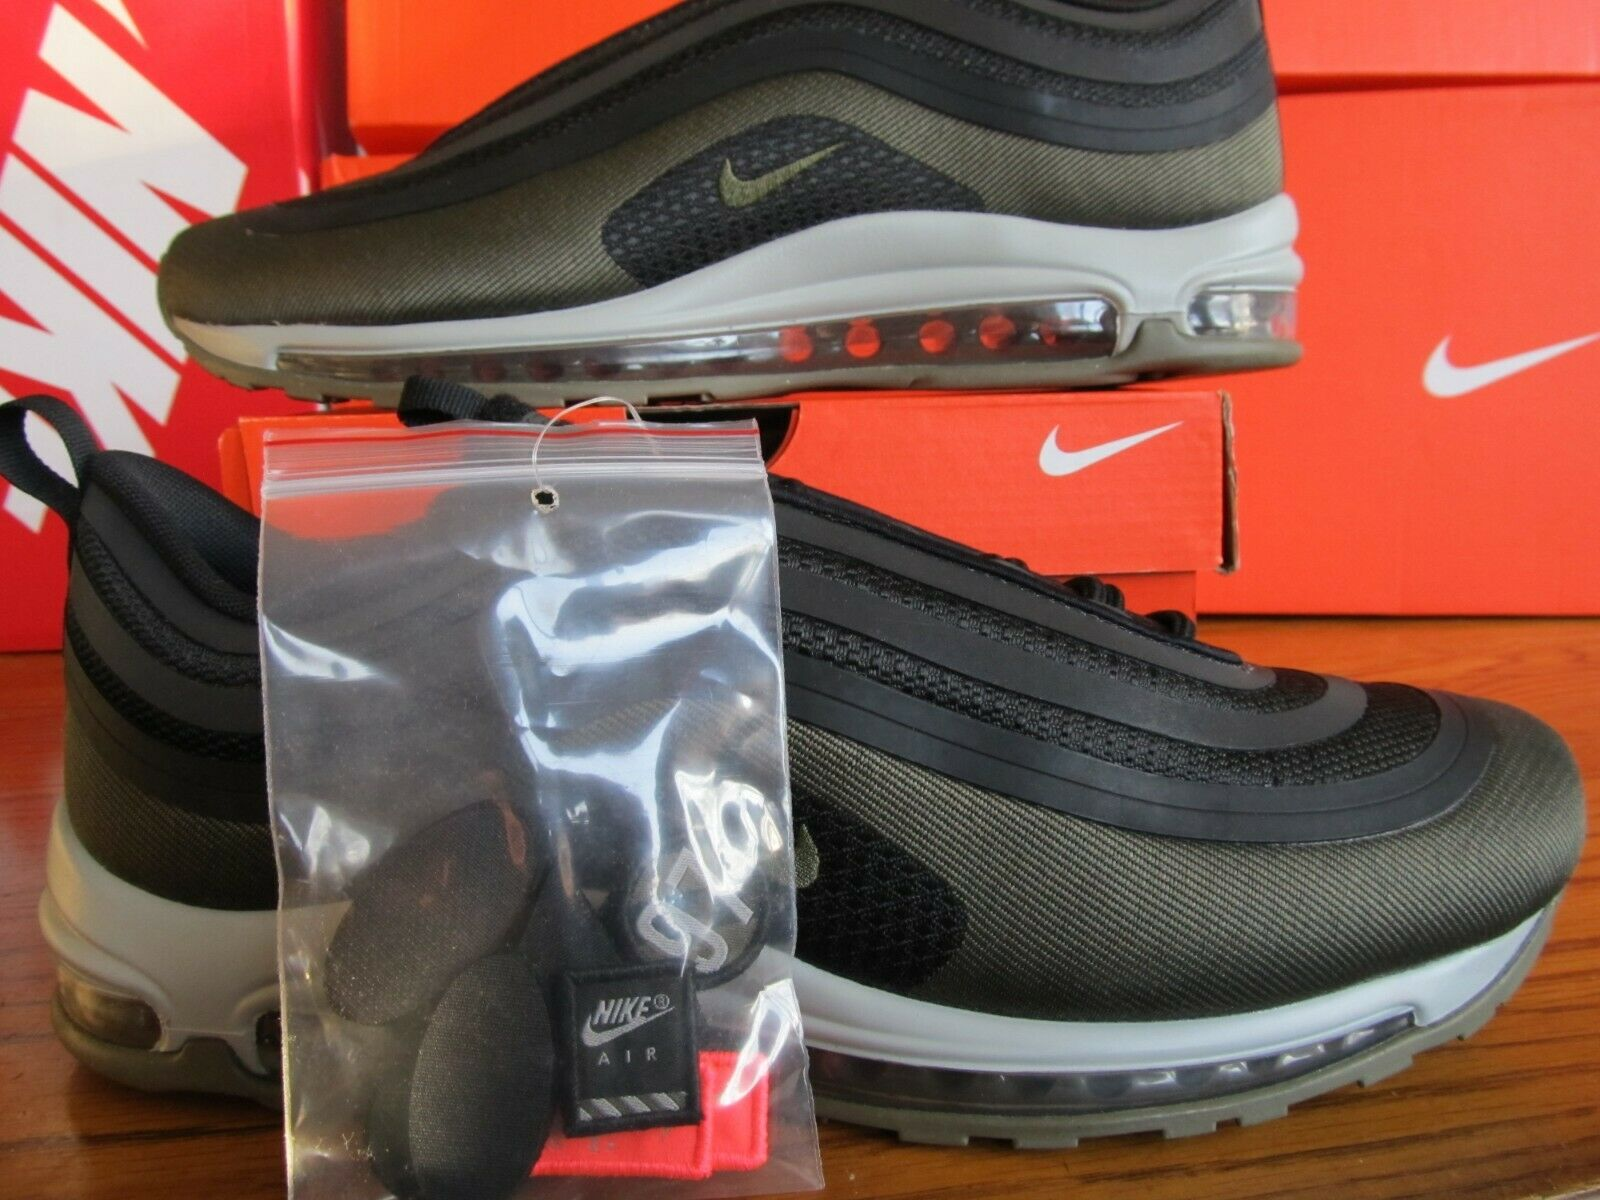 Ds Nike Air Max 97 Ul 17 Hal Ultra Patch black green Oliva 12 Ah9945 001 95 1 90